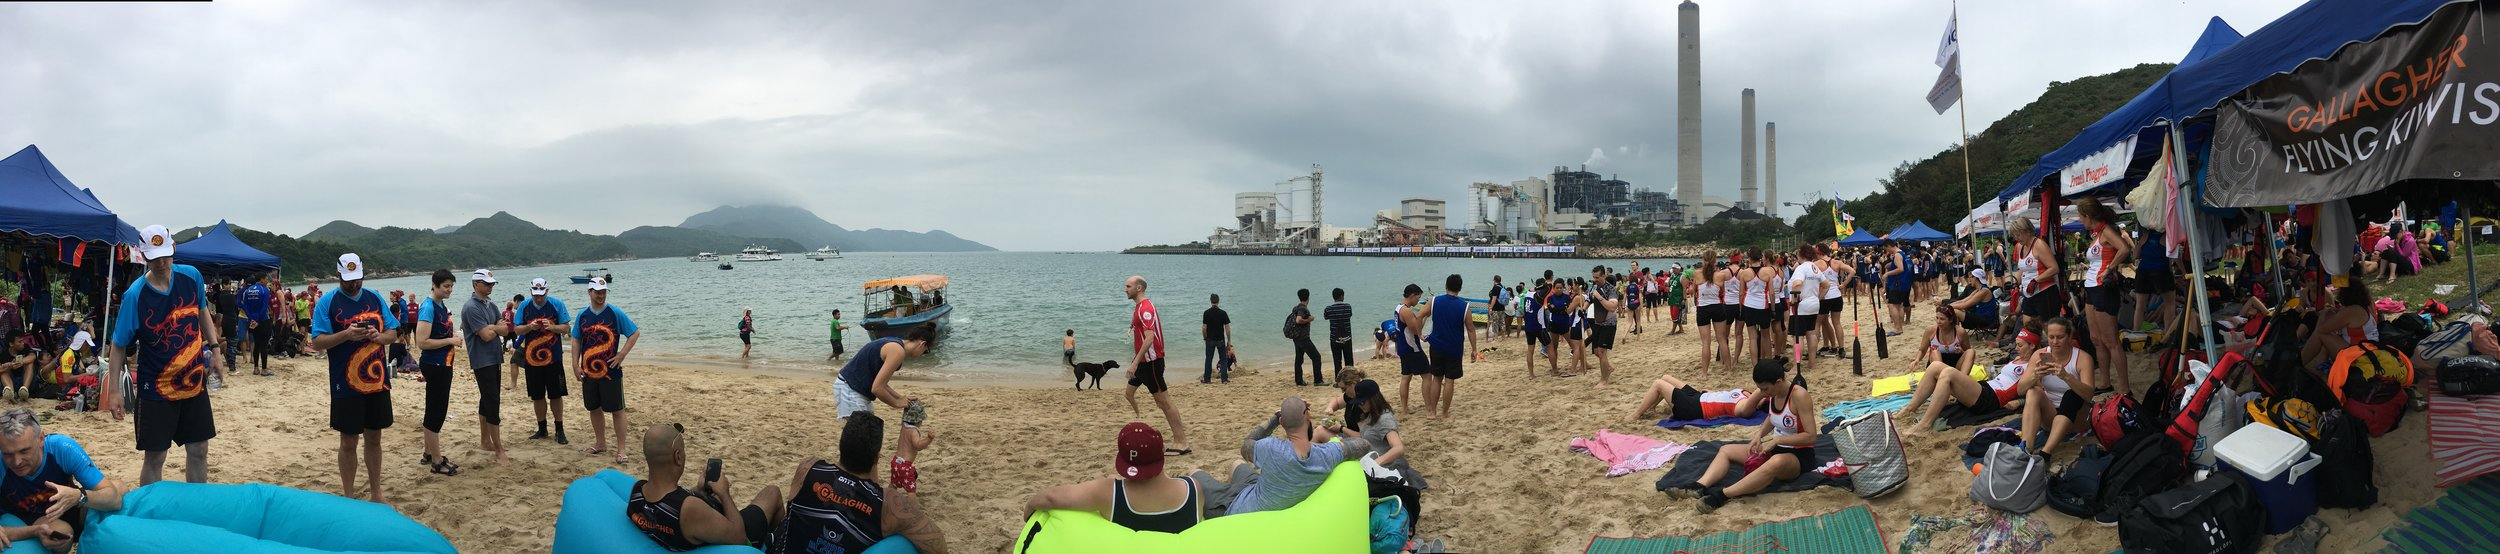 Lamma Island - Beautiful beach and power plant